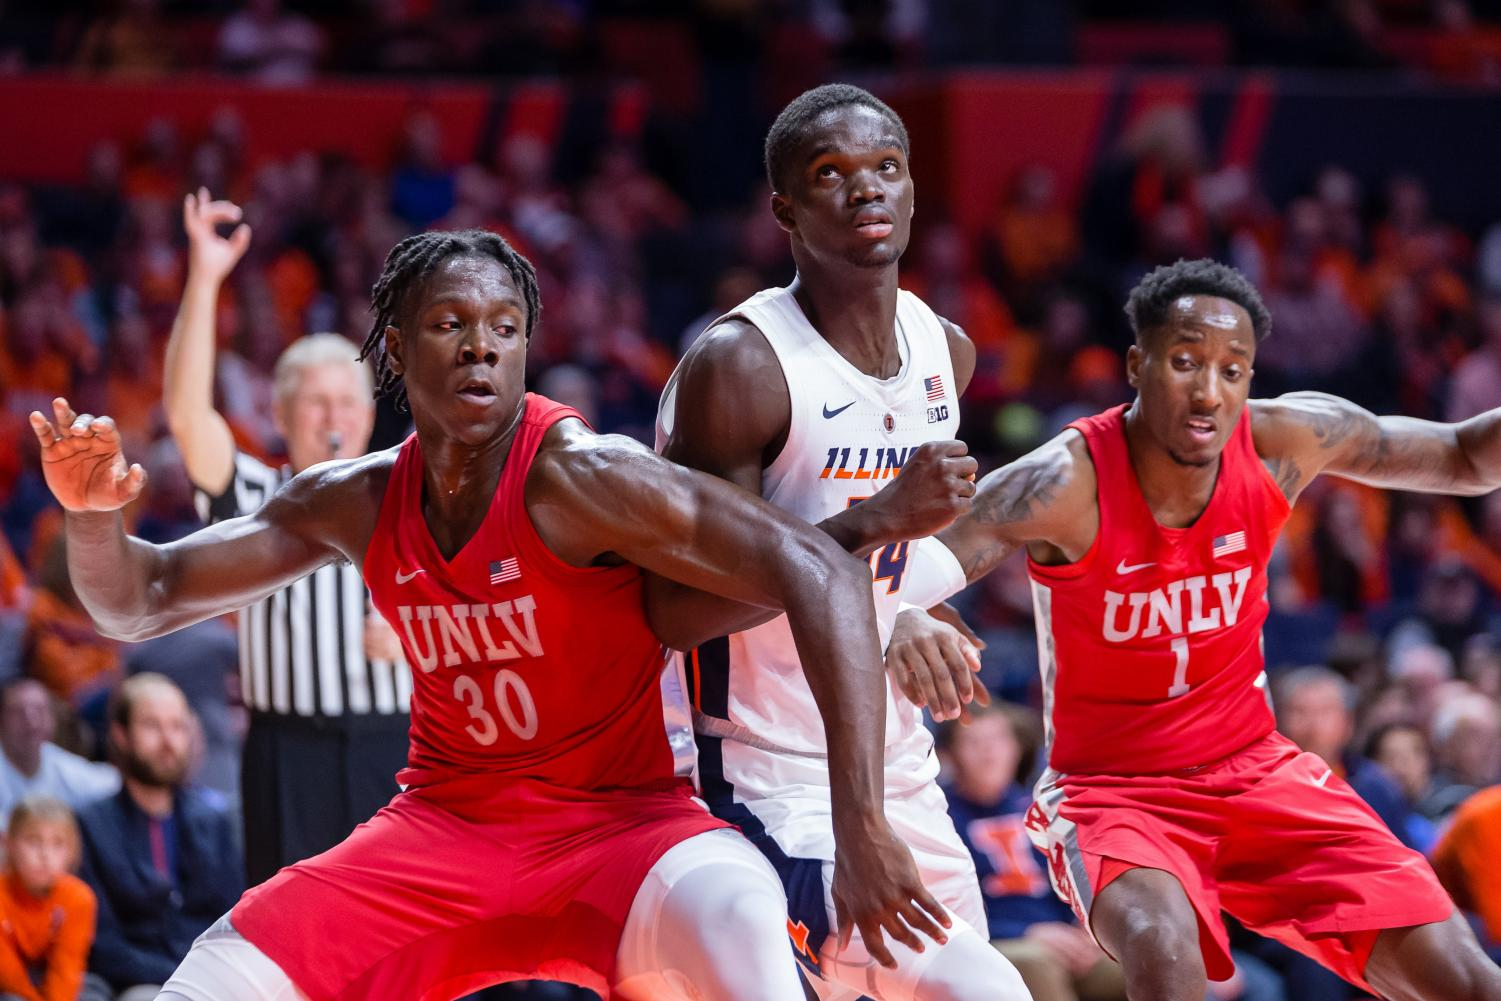 Illinois center Samba Kane fights for a position to rebound a free throw during the game against UNLV at the State Farm Center on Saturday. The Illini won 77-74.